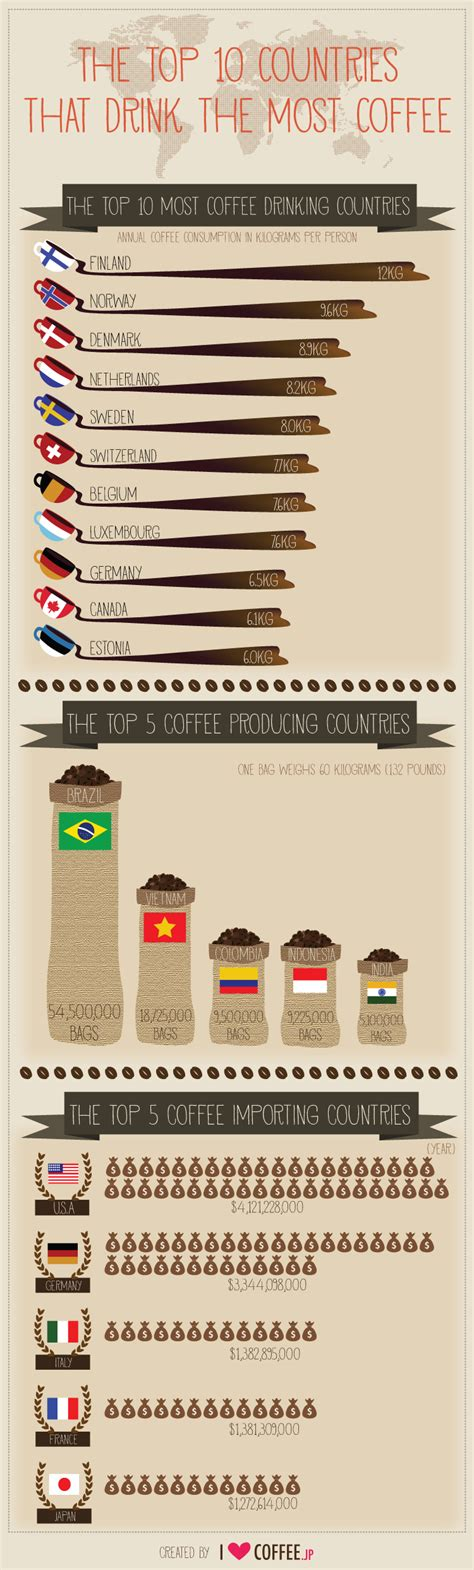 Day Coffee national coffee day the top 10 countries that drink the